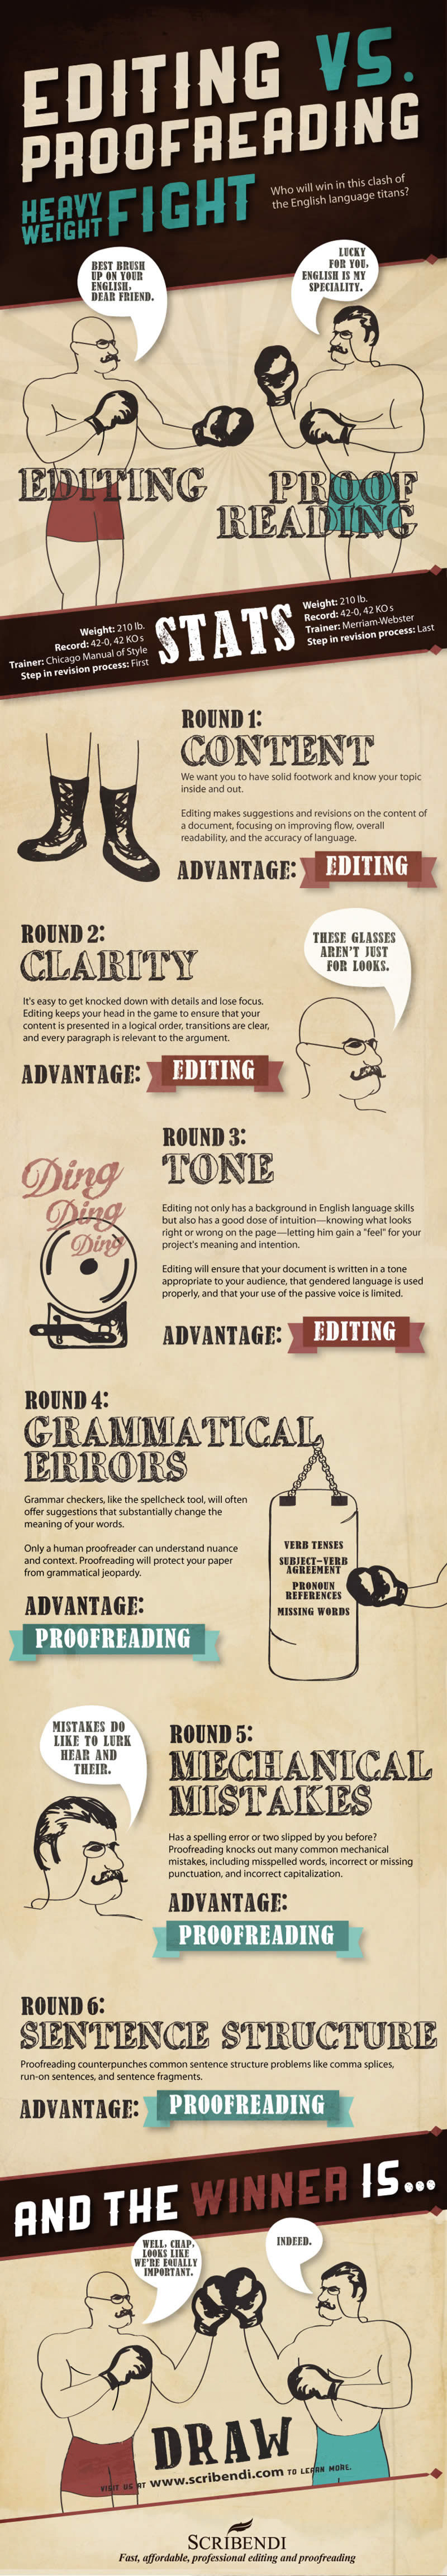 Editing vs Proofreading (Infographic)